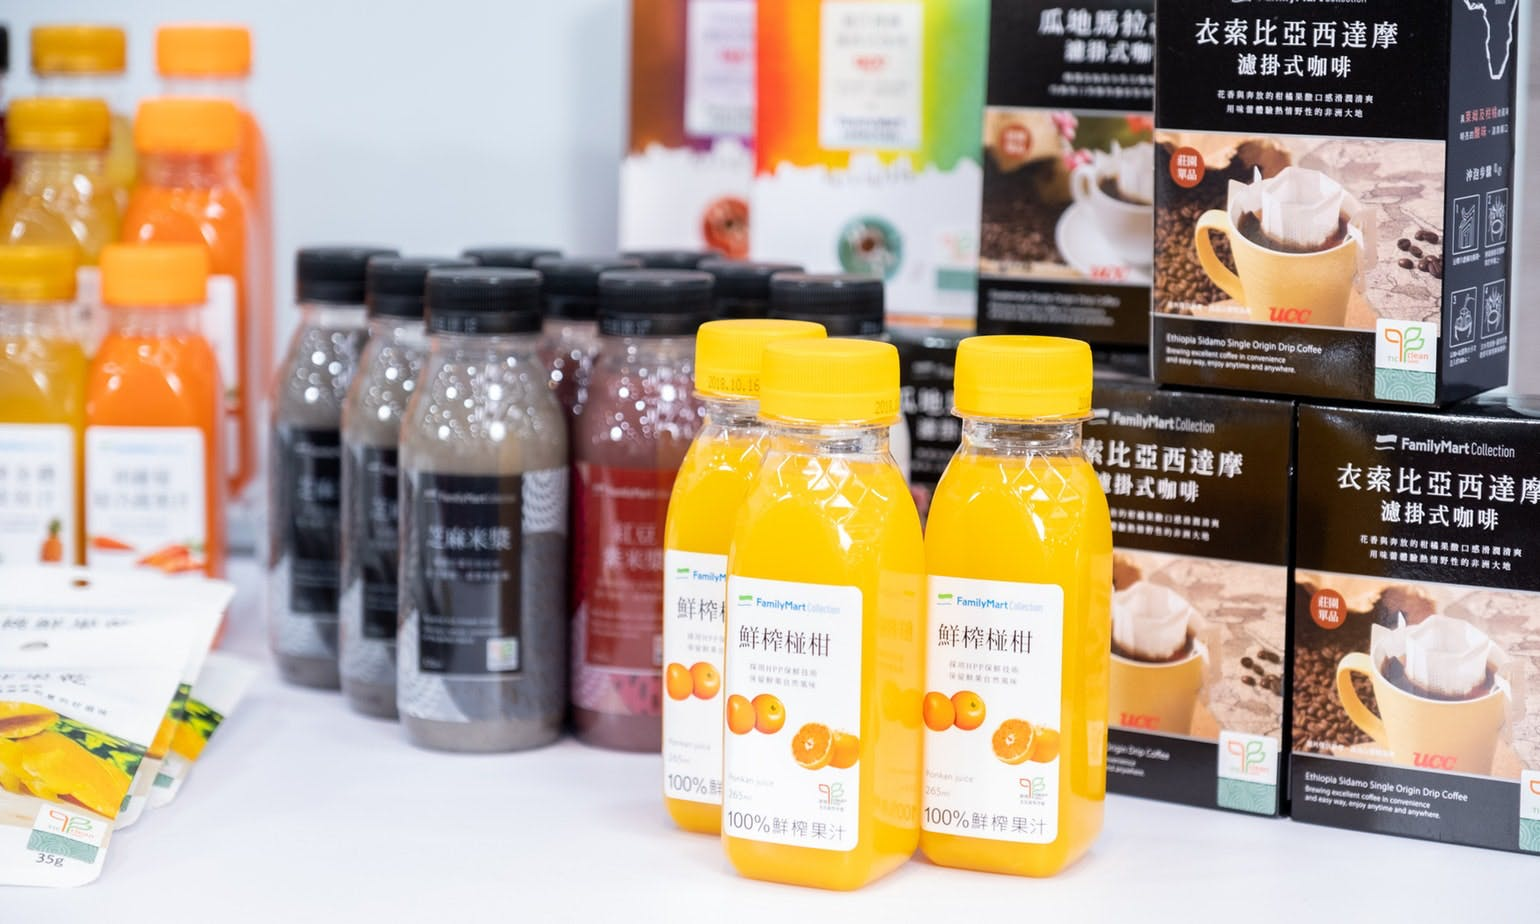 Taiwanese Companies Banish Food Additives in Quest for Natural Flavor